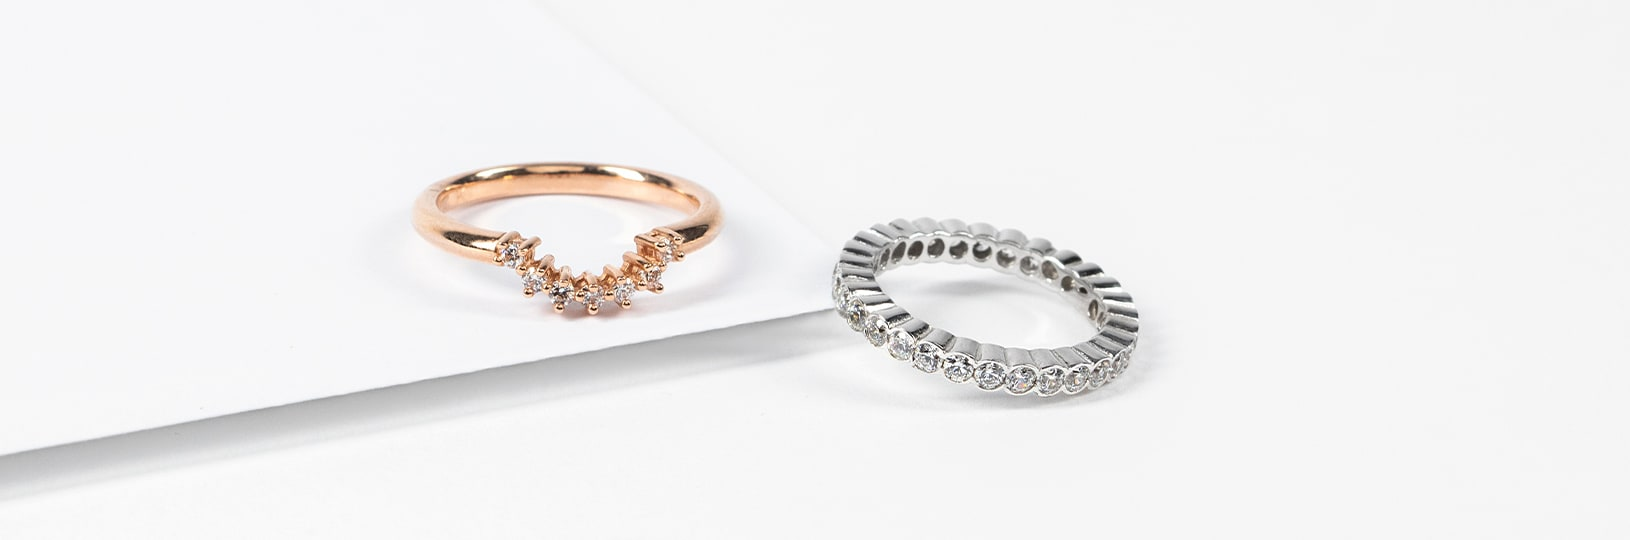 Accented wedding rings.